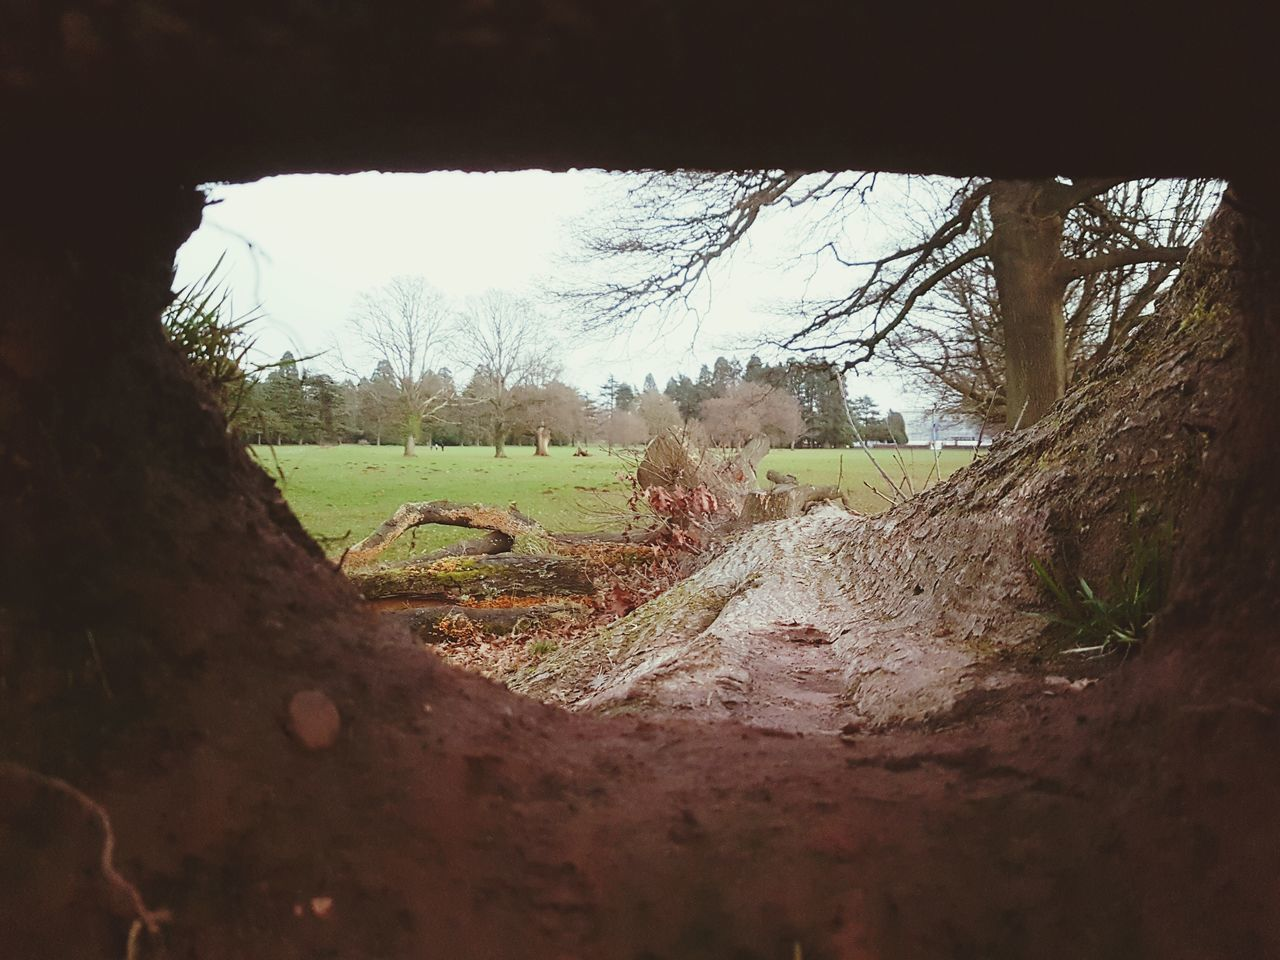 View to a kill Tree Sky Landscape No People Day Outdoors Nature Tunnel Vision Tredegar House Newport Nature Tunnel Textured  Wood - Material Cracked Decaying Wood Rotting Wood Dead Tree Rotting Tree Trunk Dead Plant Beauty In Nature Tree Decaying Close-up Fallen Tree